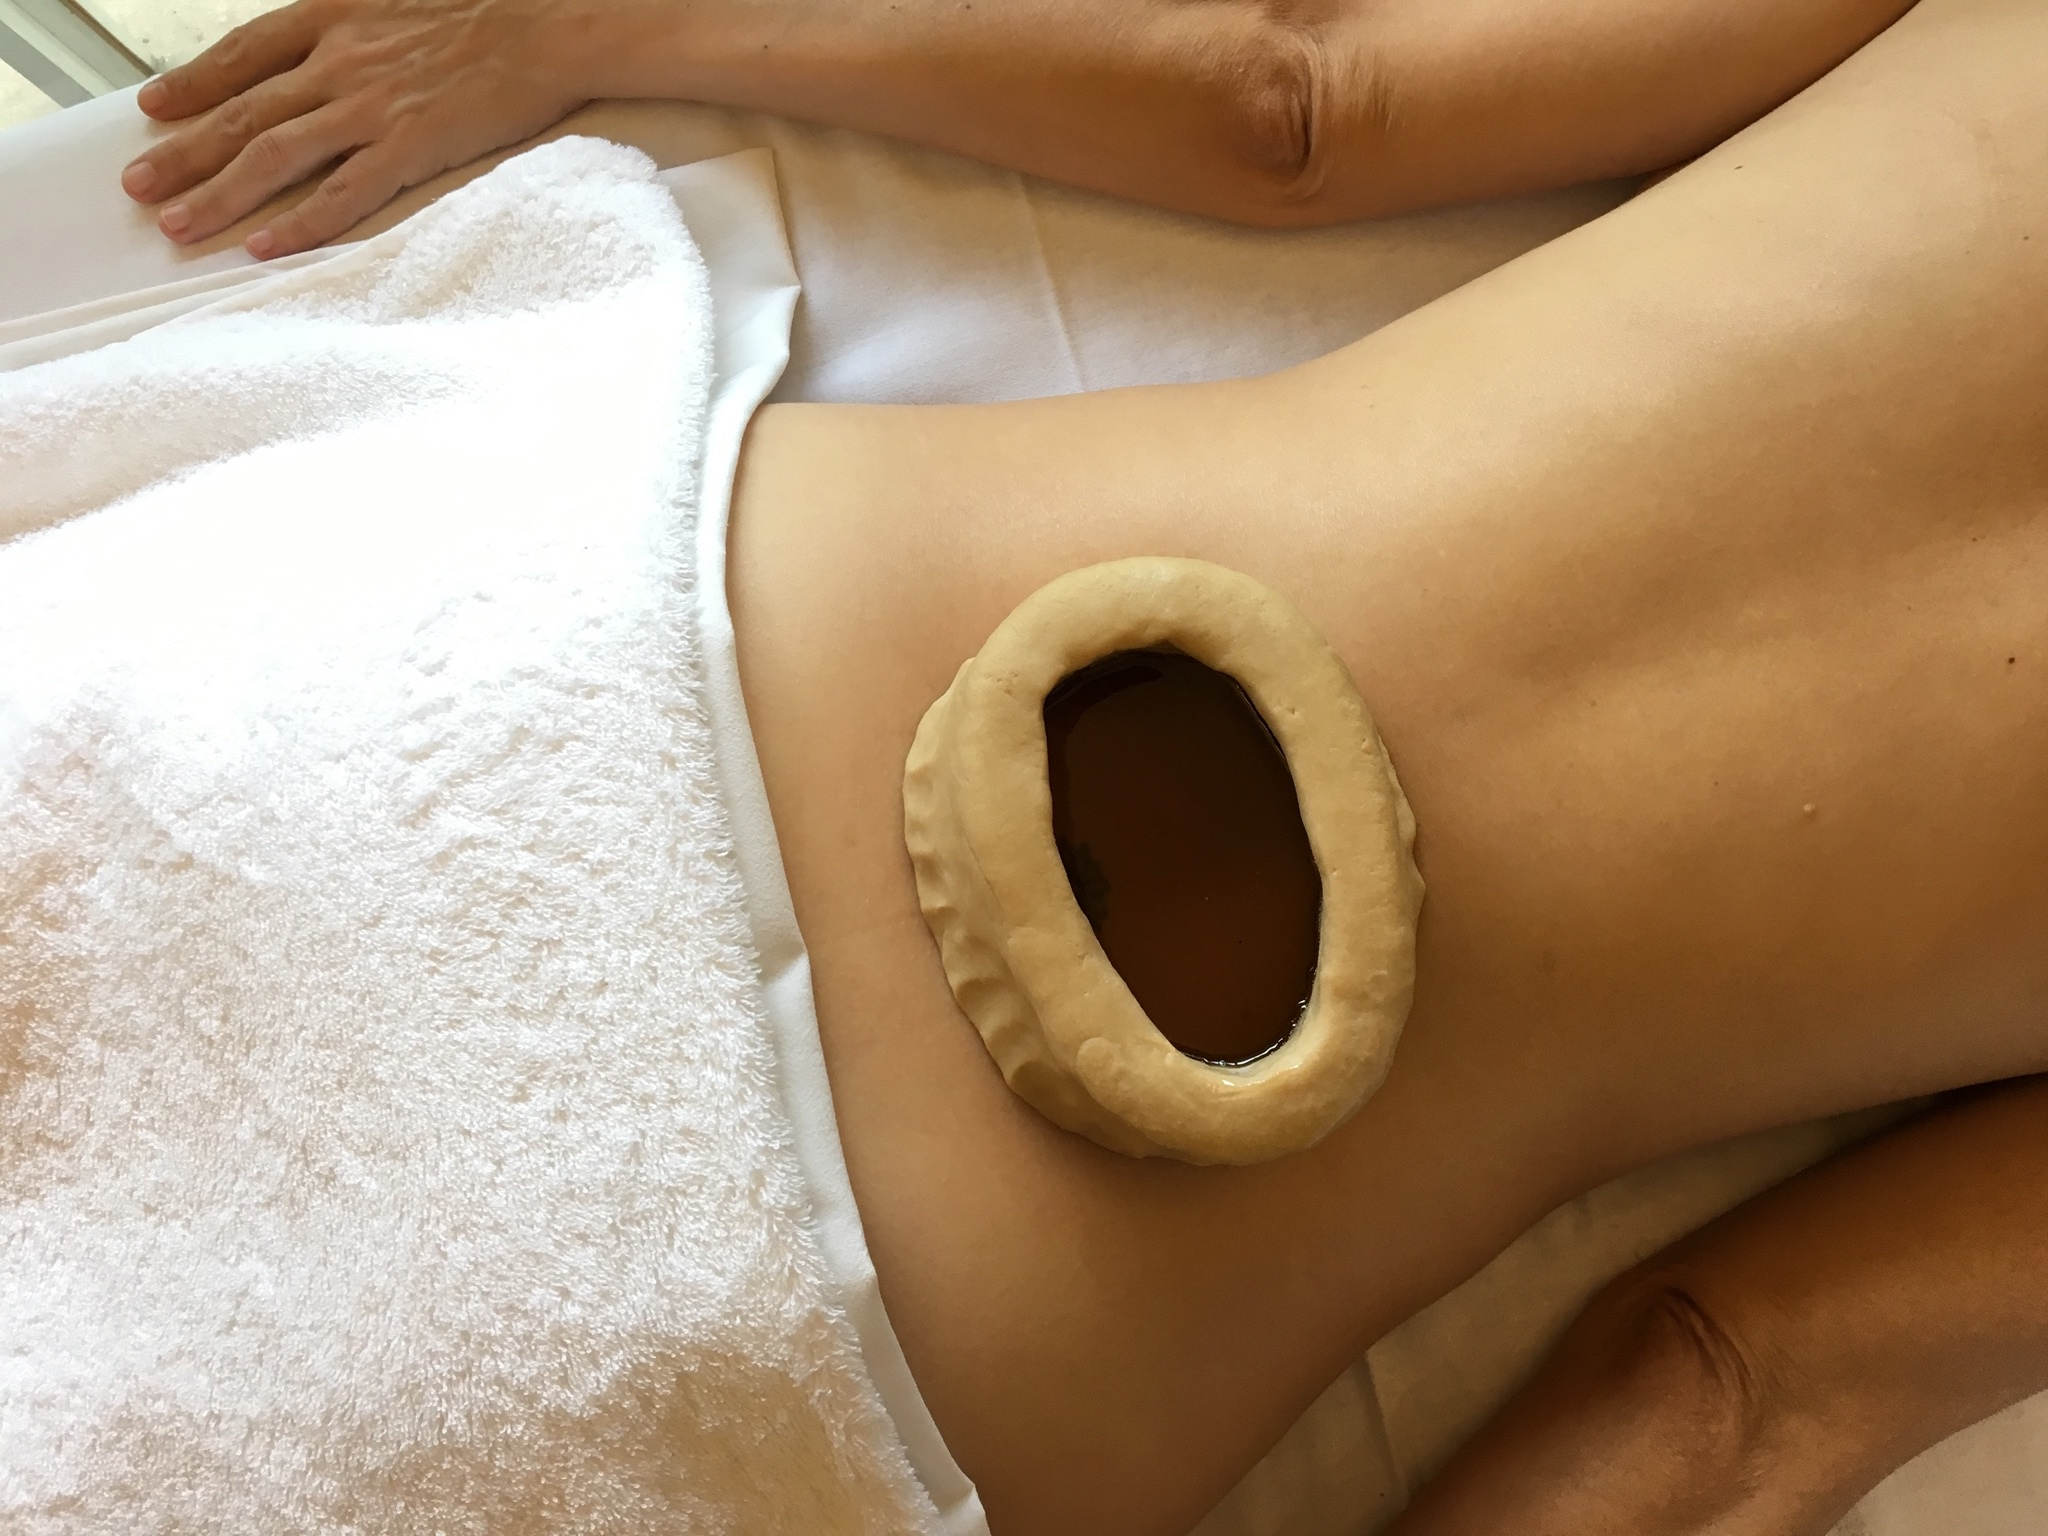 kati basti - low back ayurvedic treatment